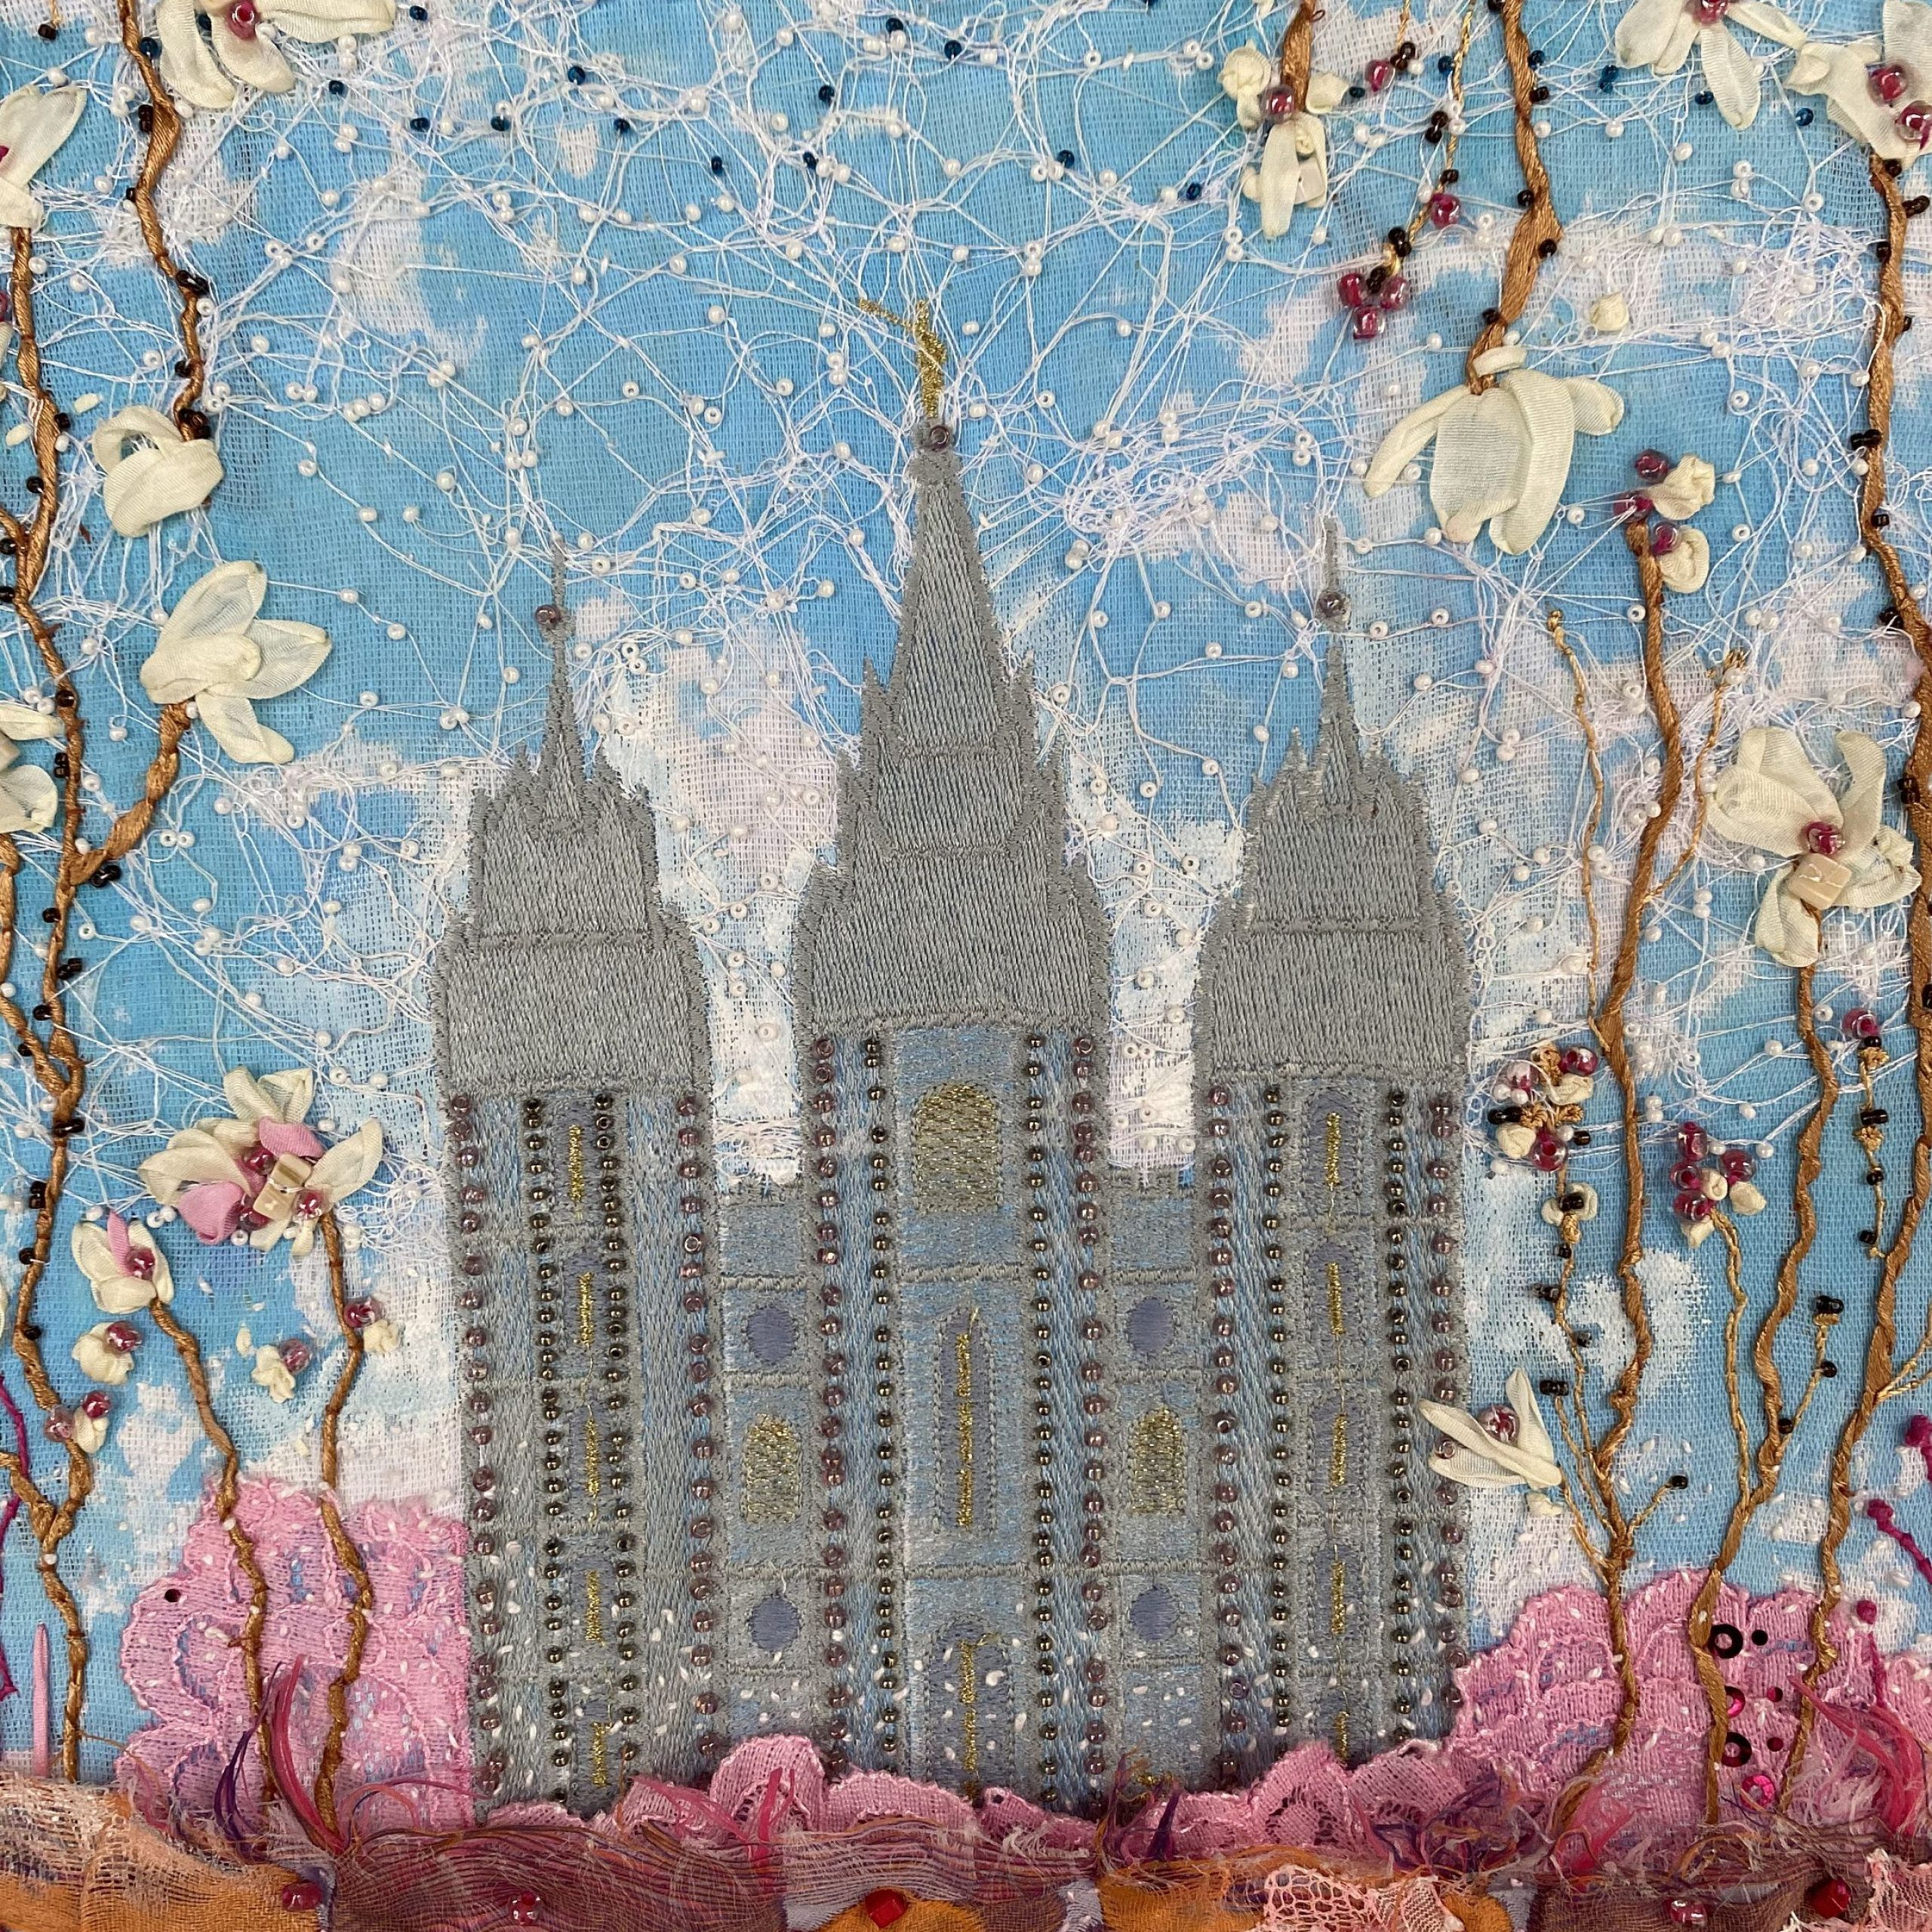 Wall Decor. Textile Art. Fiber Arts. Mormon Temple (View 3 of 20)